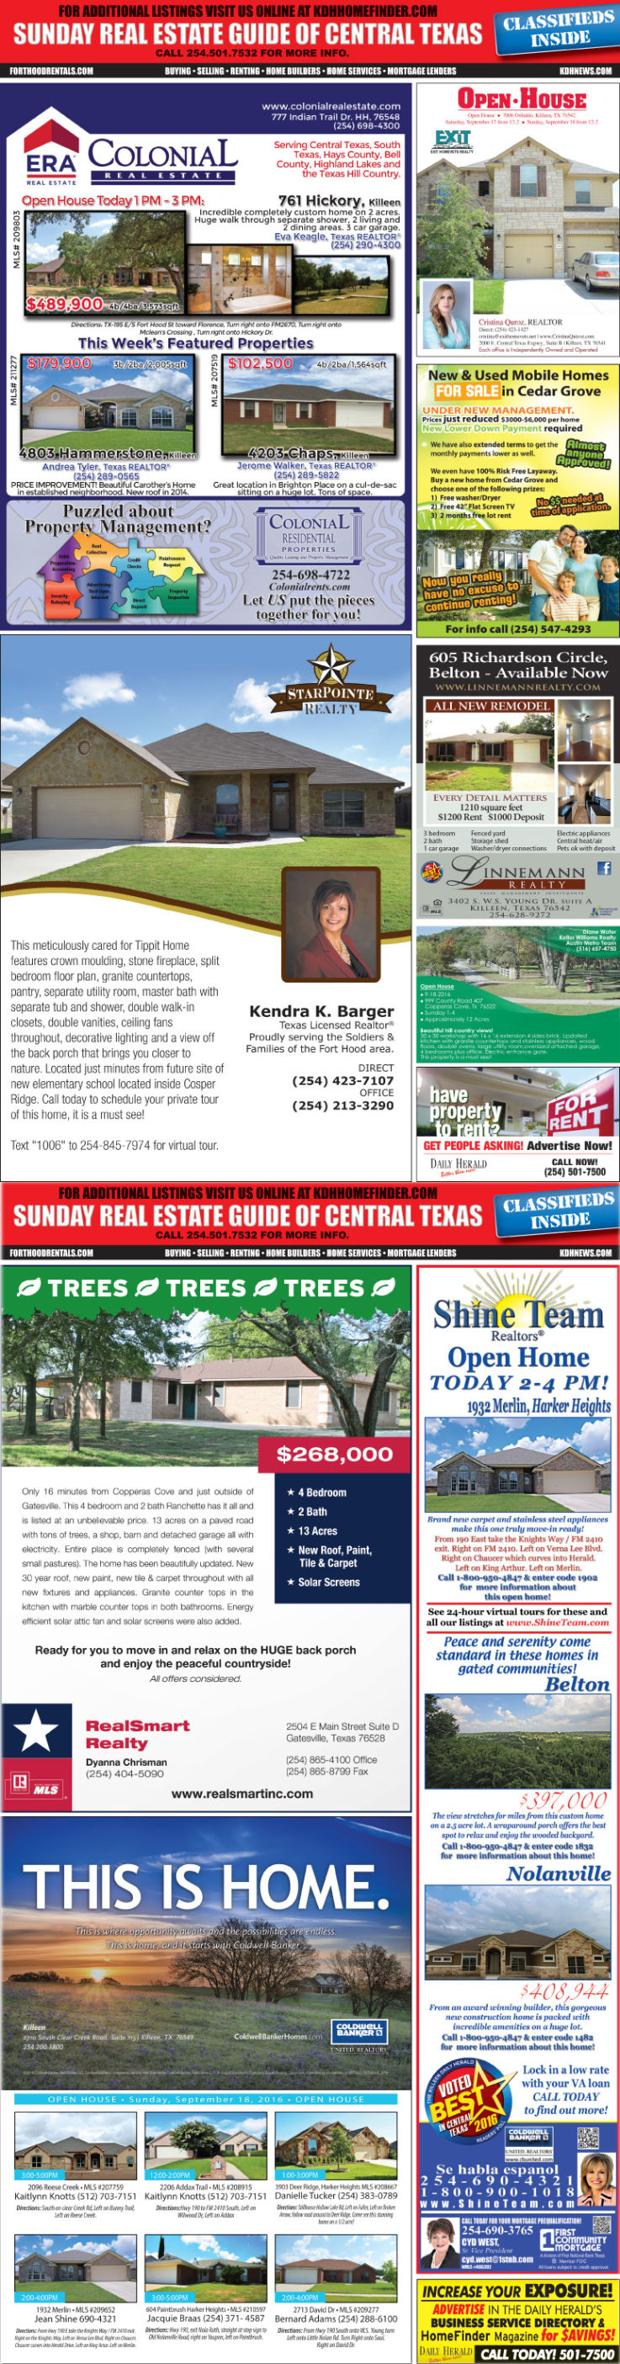 Sunday Real Estate Guide 9/18/16 SREG